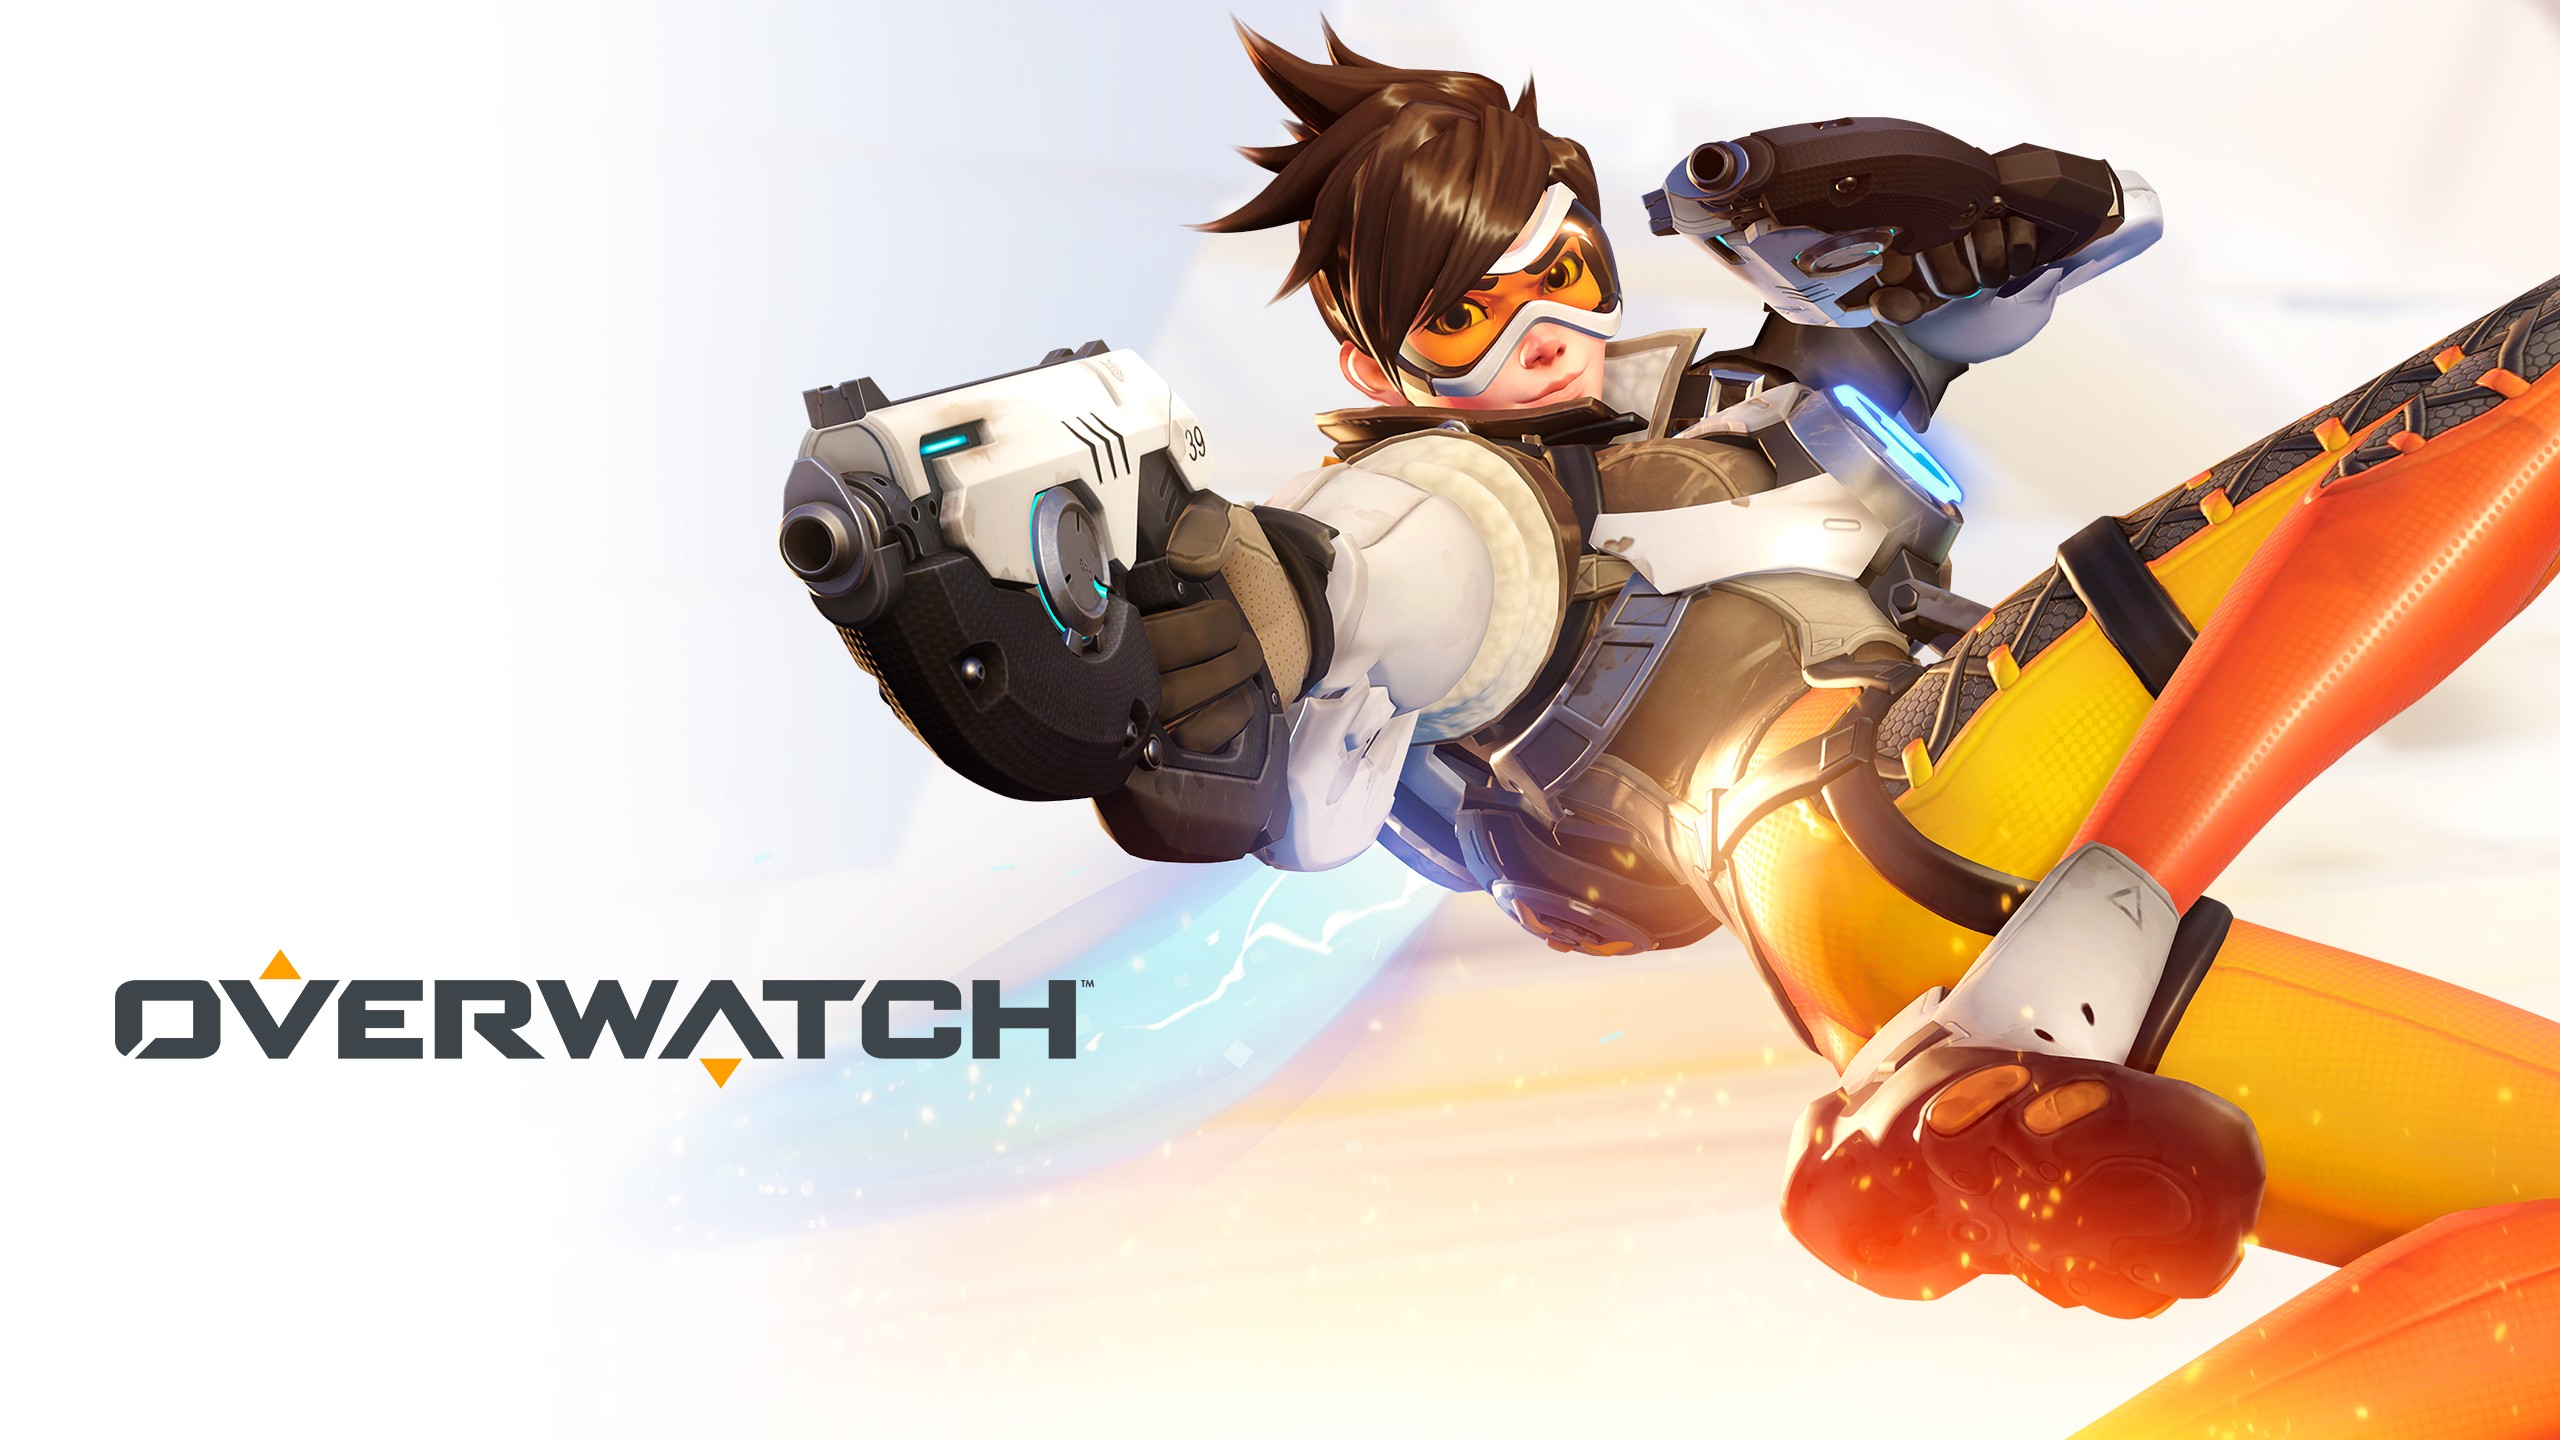 Overwatch Tracer wallpaper ·① Download free HD wallpapers ...